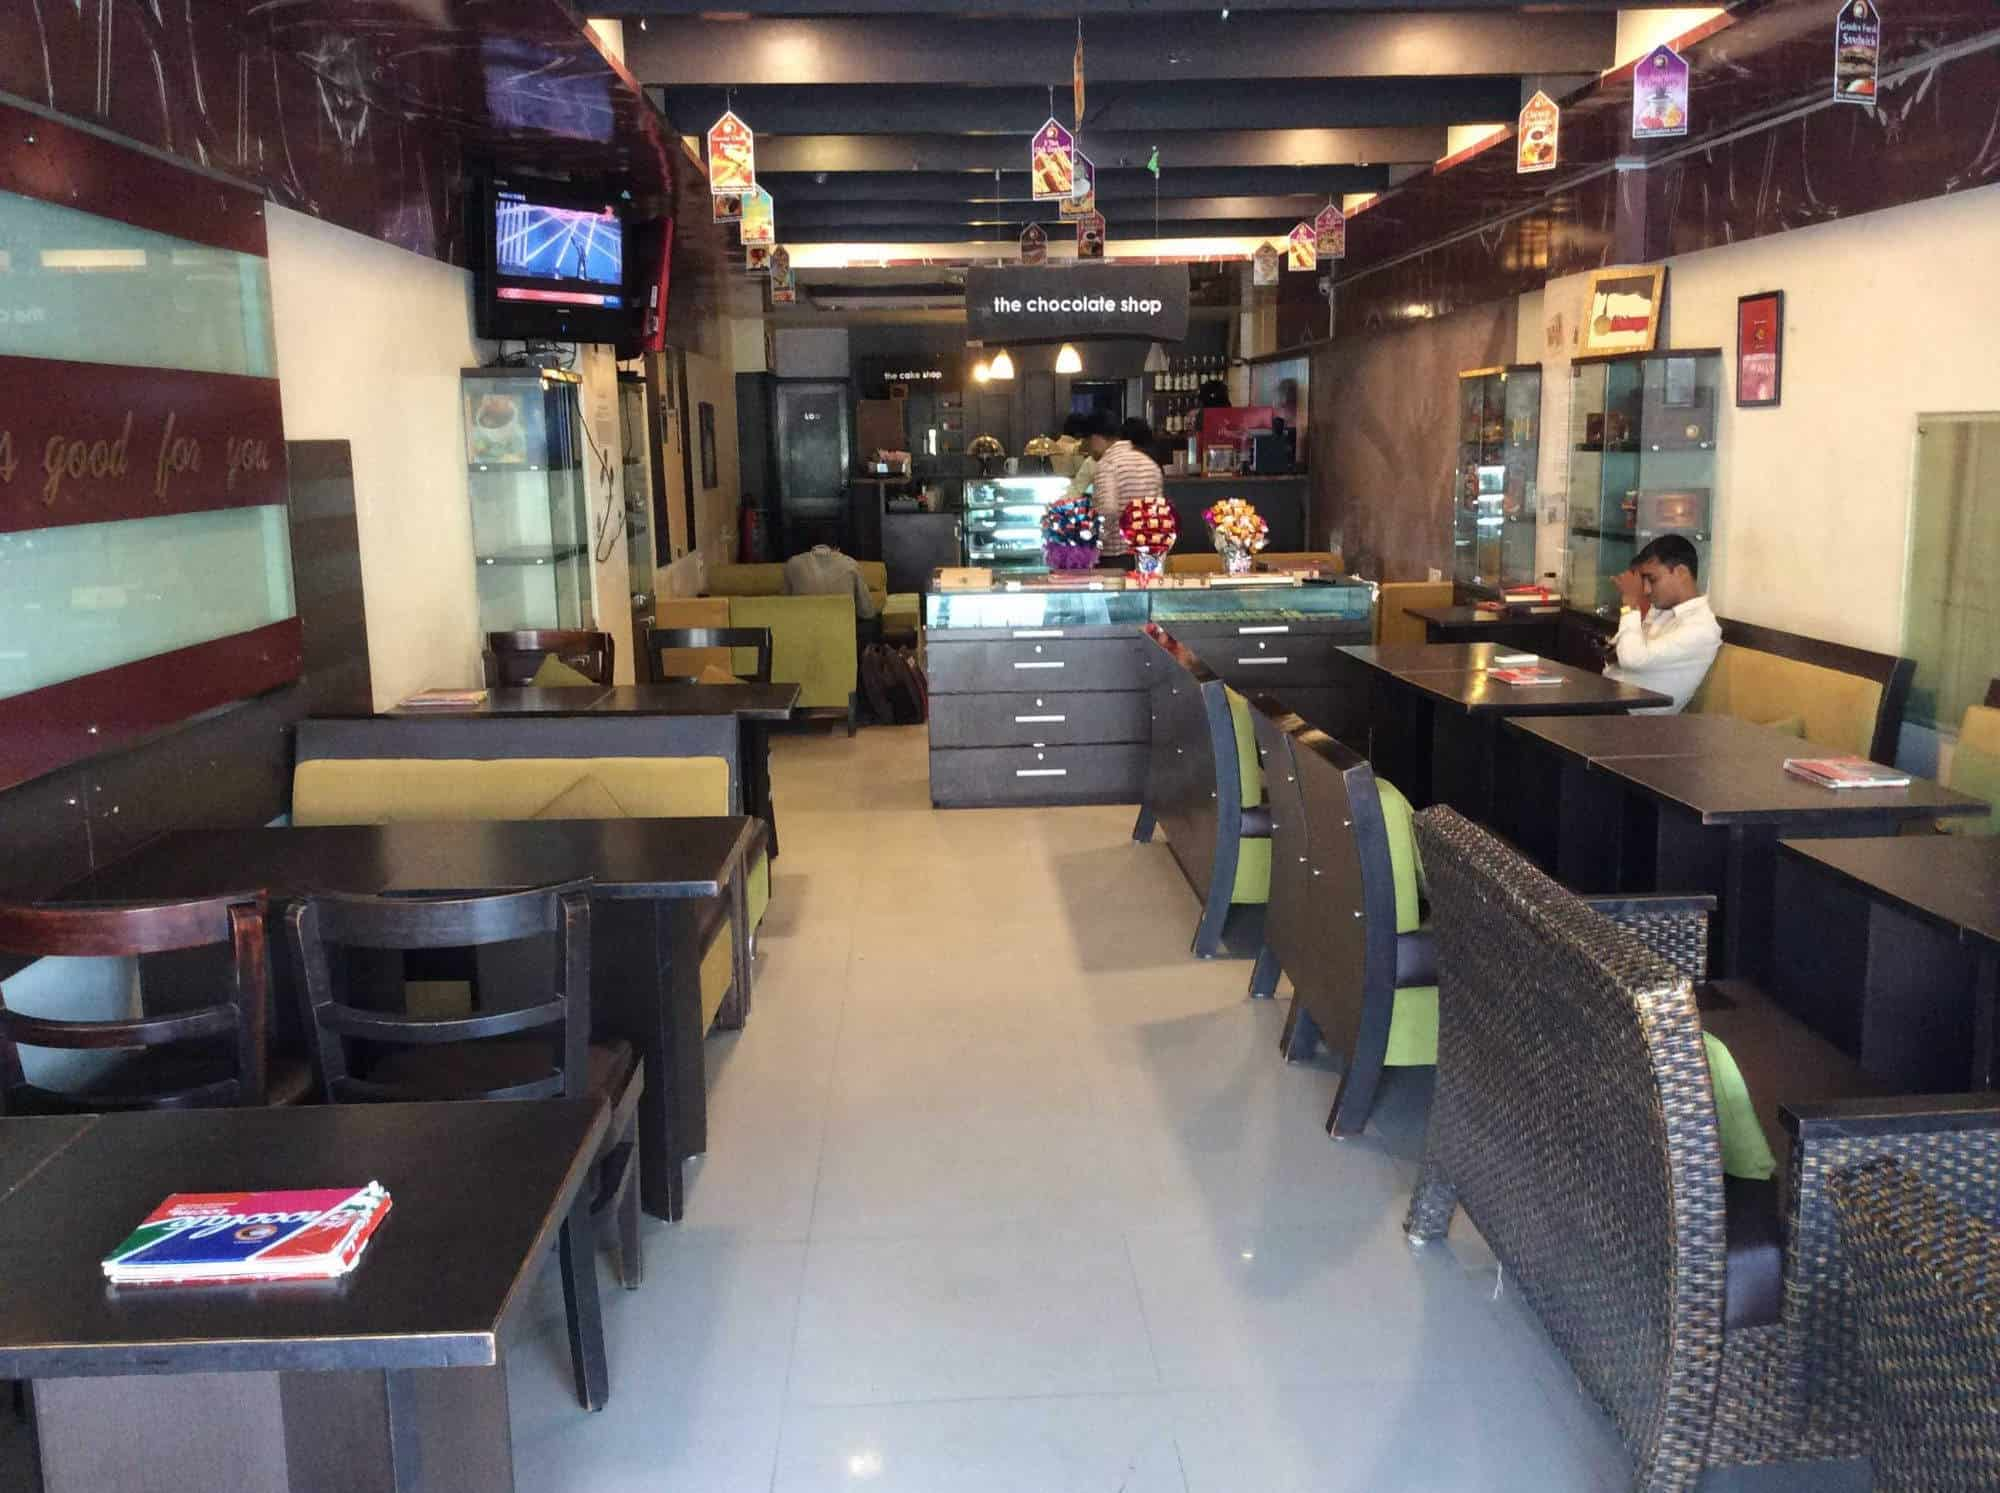 The Chocolate Room Photos, Satellite, Ahmedabad- Pictures & Images ...